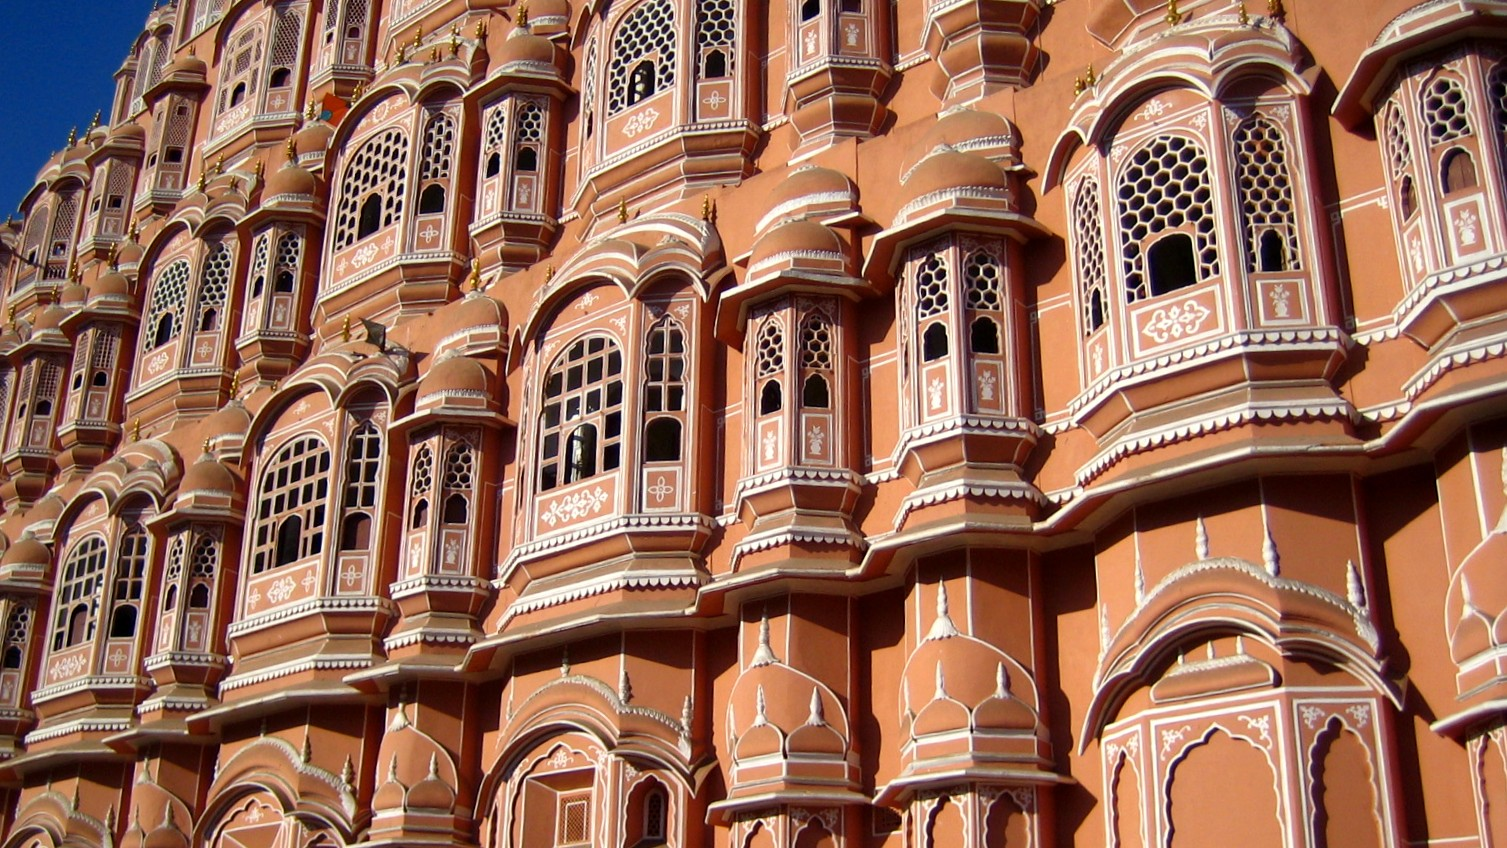 Fastfacts of Hawa Mahal, the Palace of Breeze